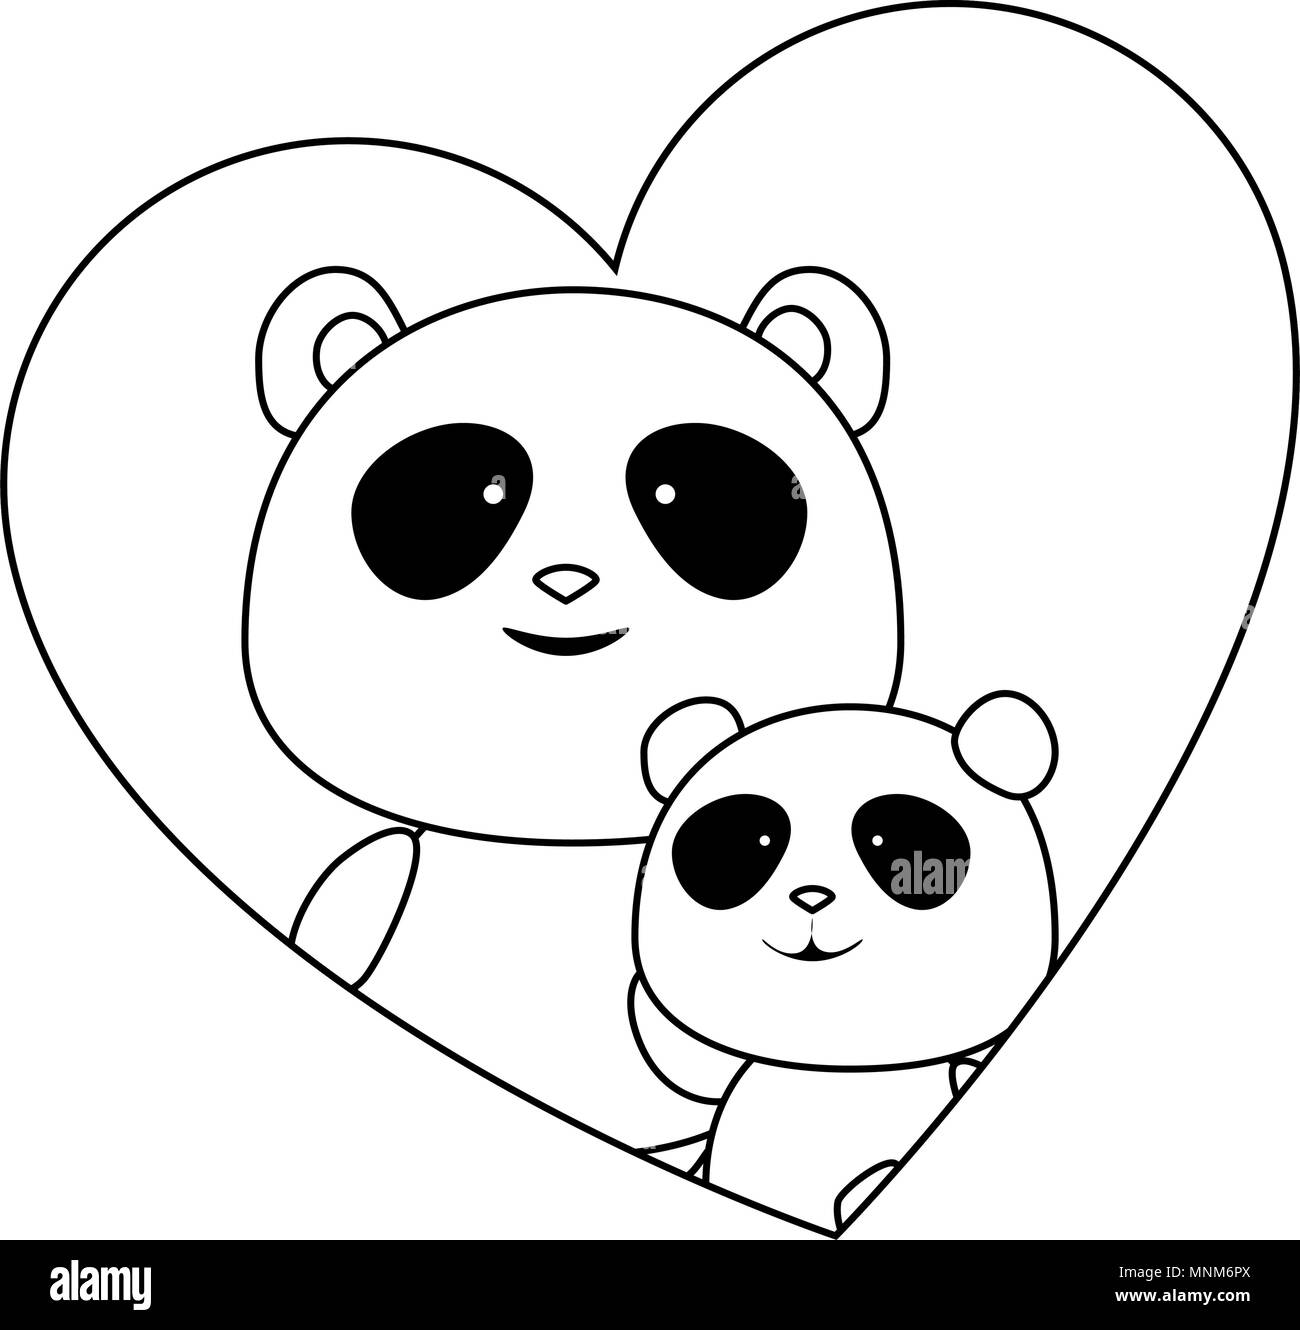 cute father and son panda bears in heart characters - Stock Image